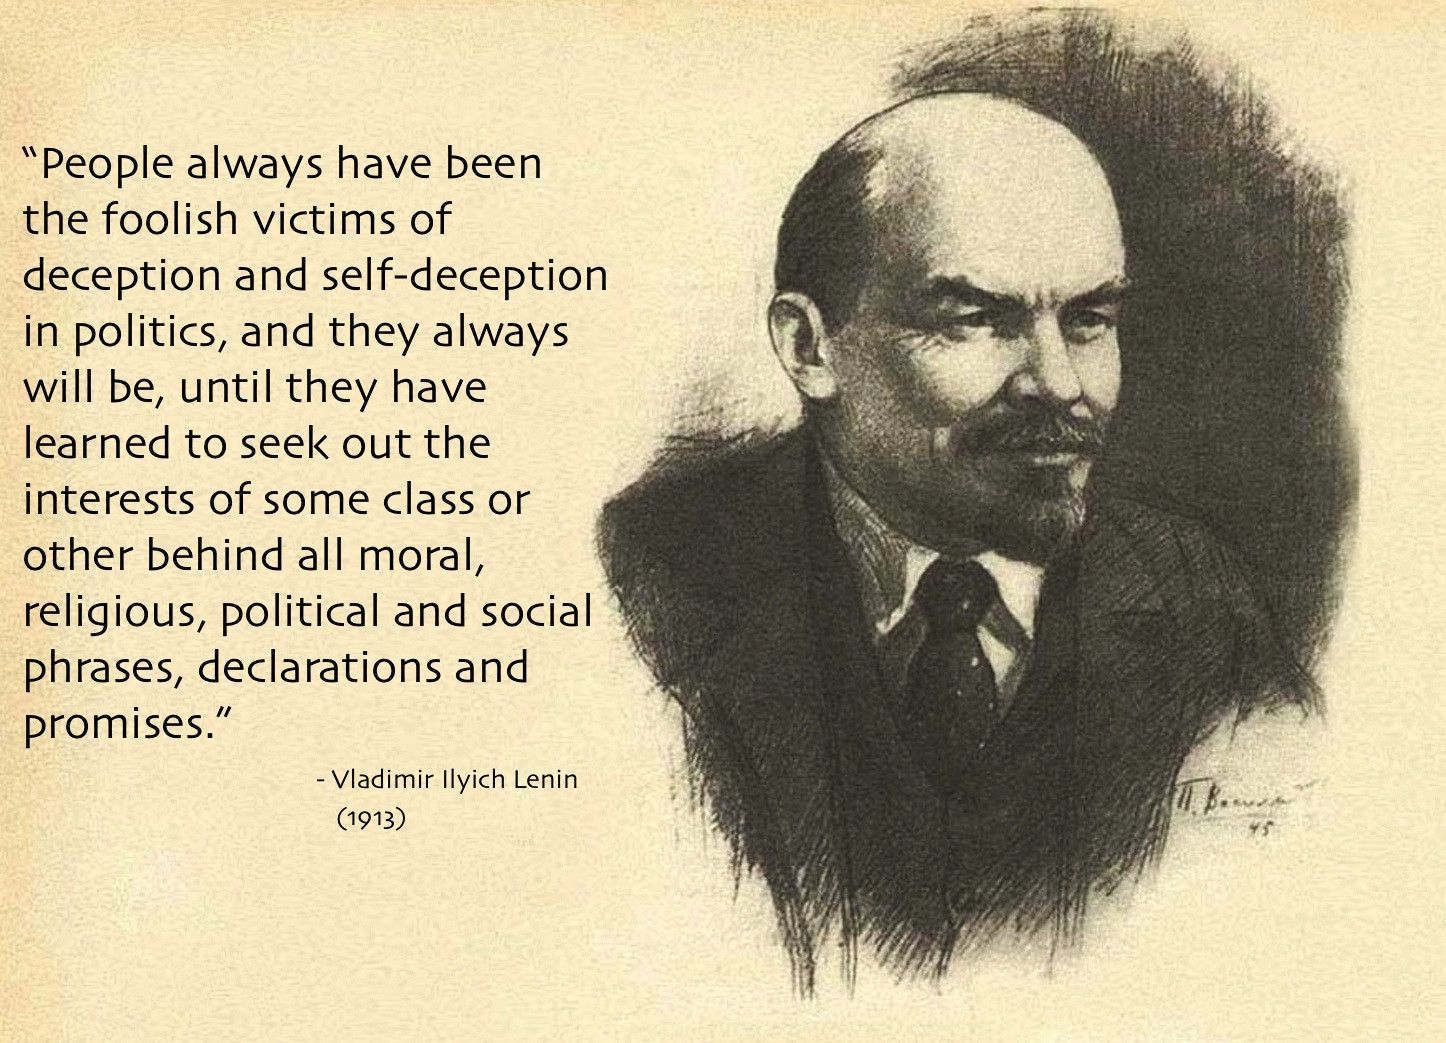 vladimir lenin s quote philosophy quotes quotes vladimir lenin s quote 2